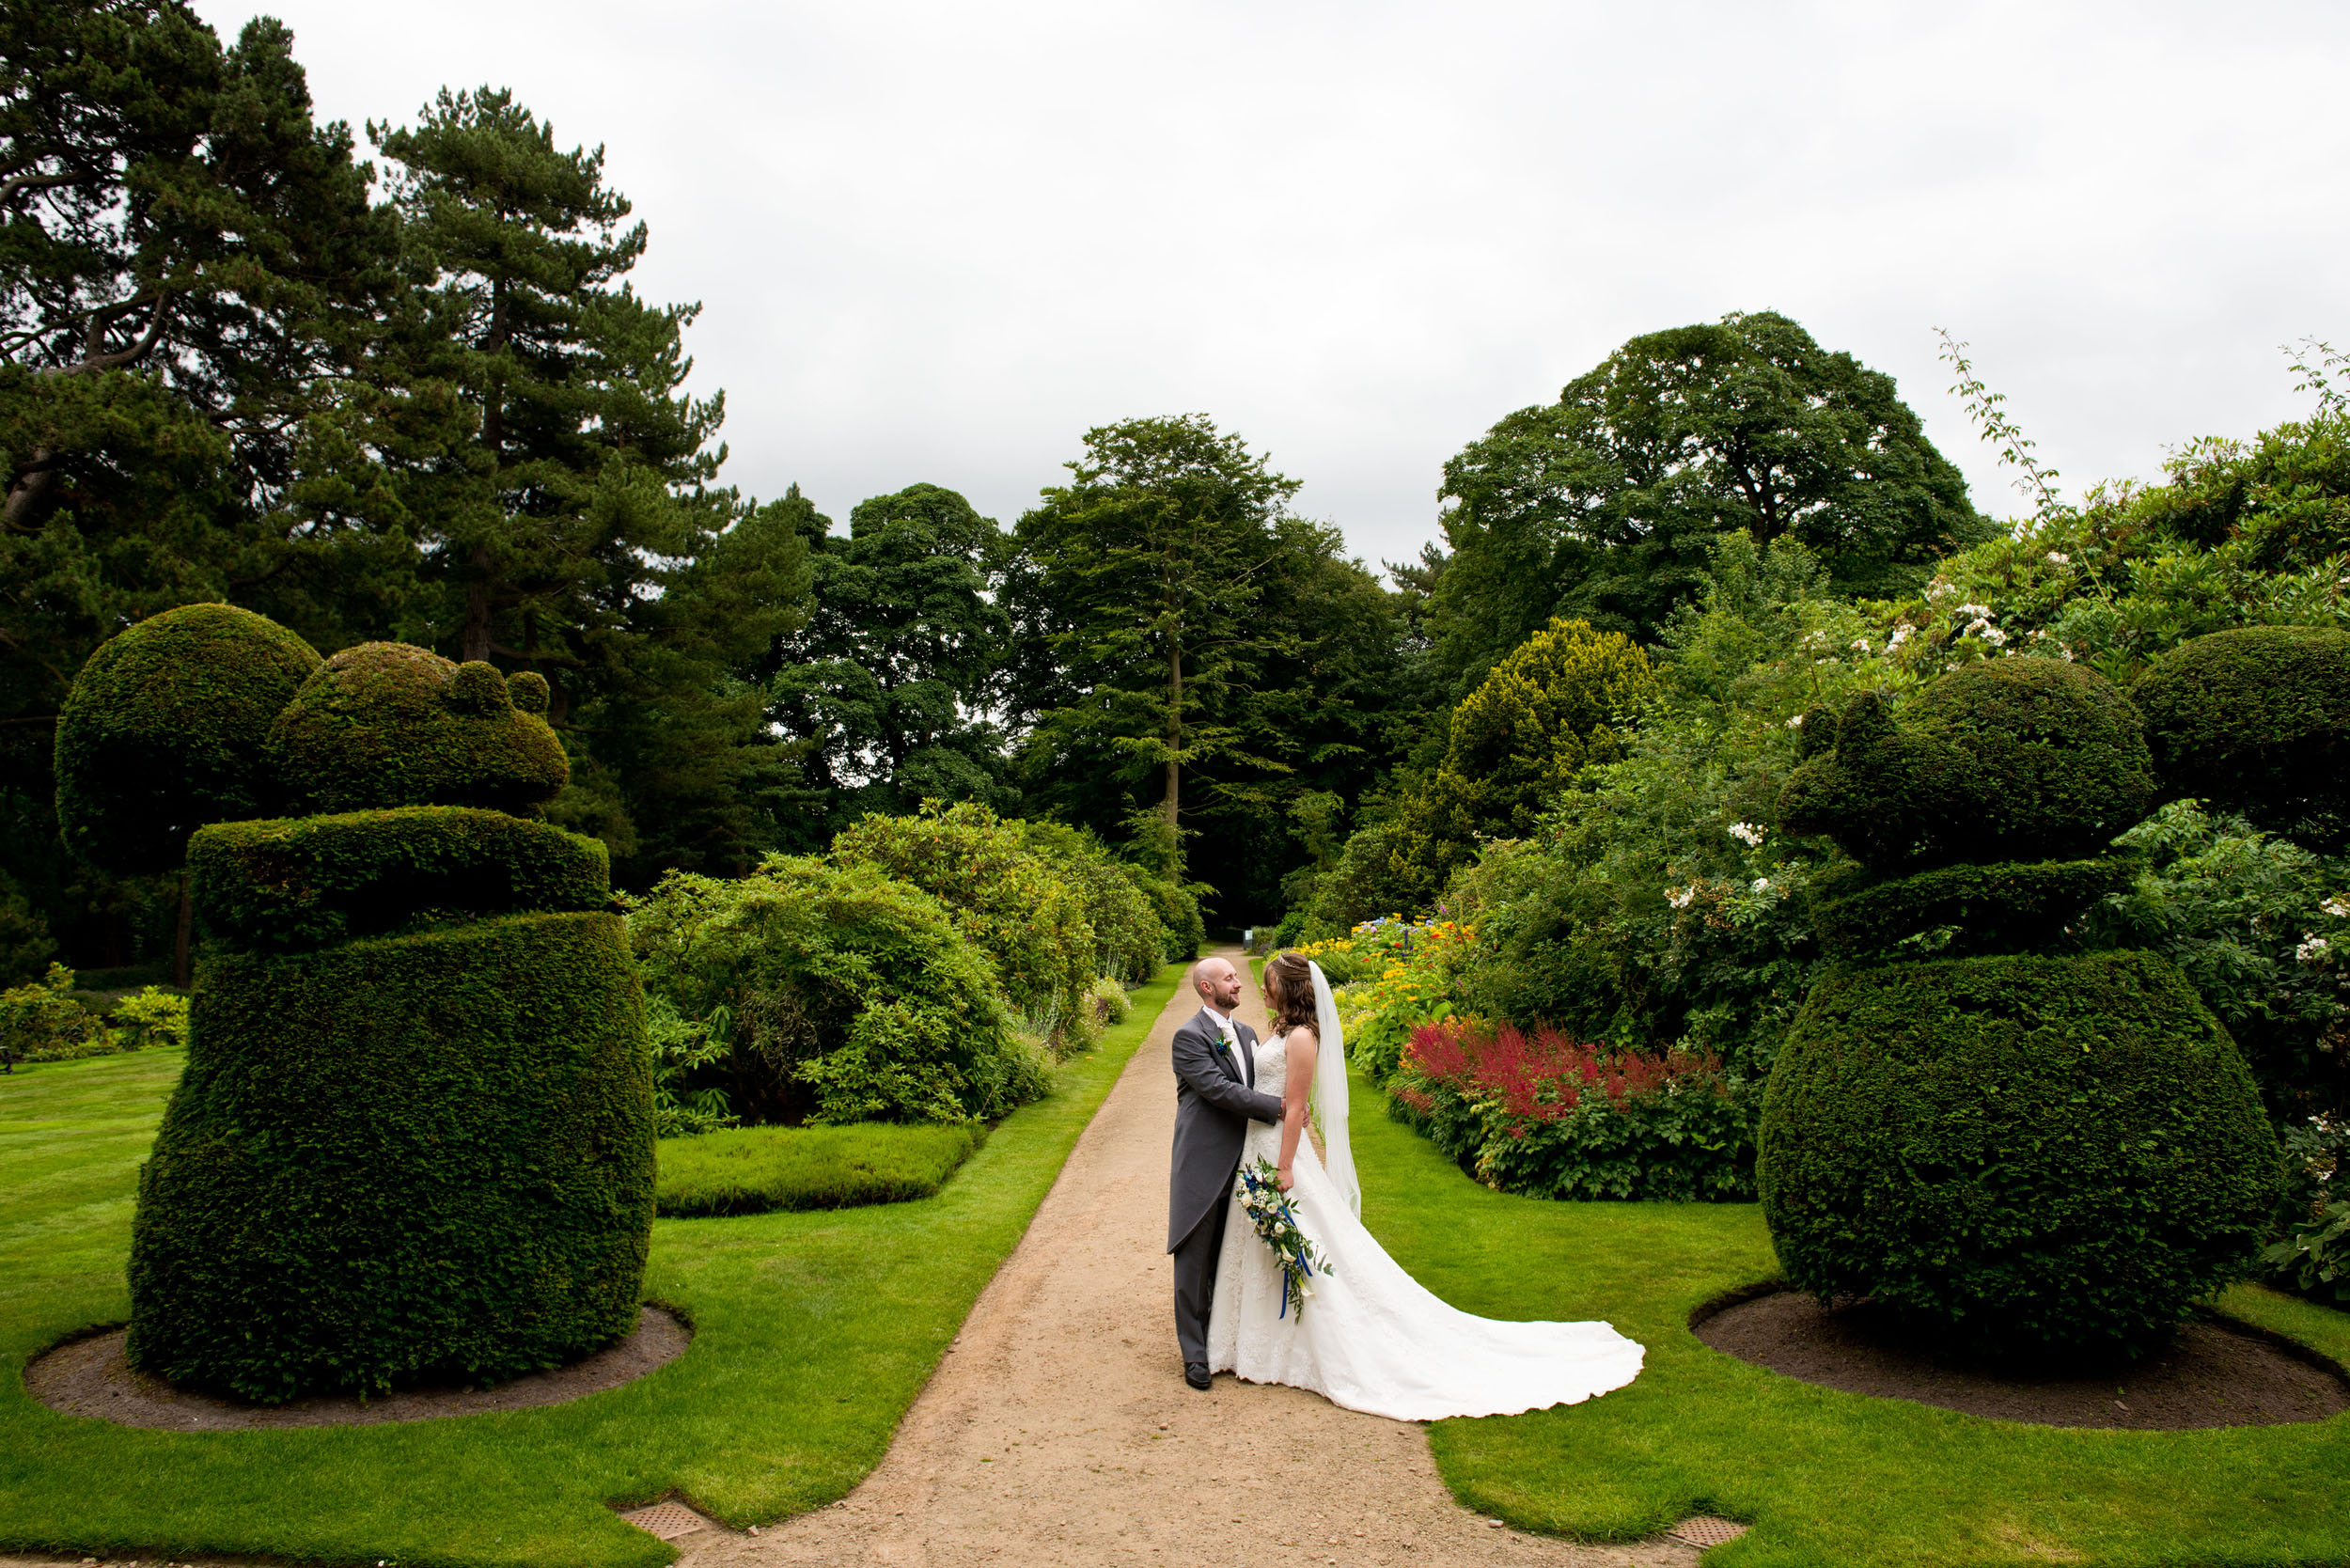 This couples favourite animal is a the red squirrel, so these topiary squirrels were perfect